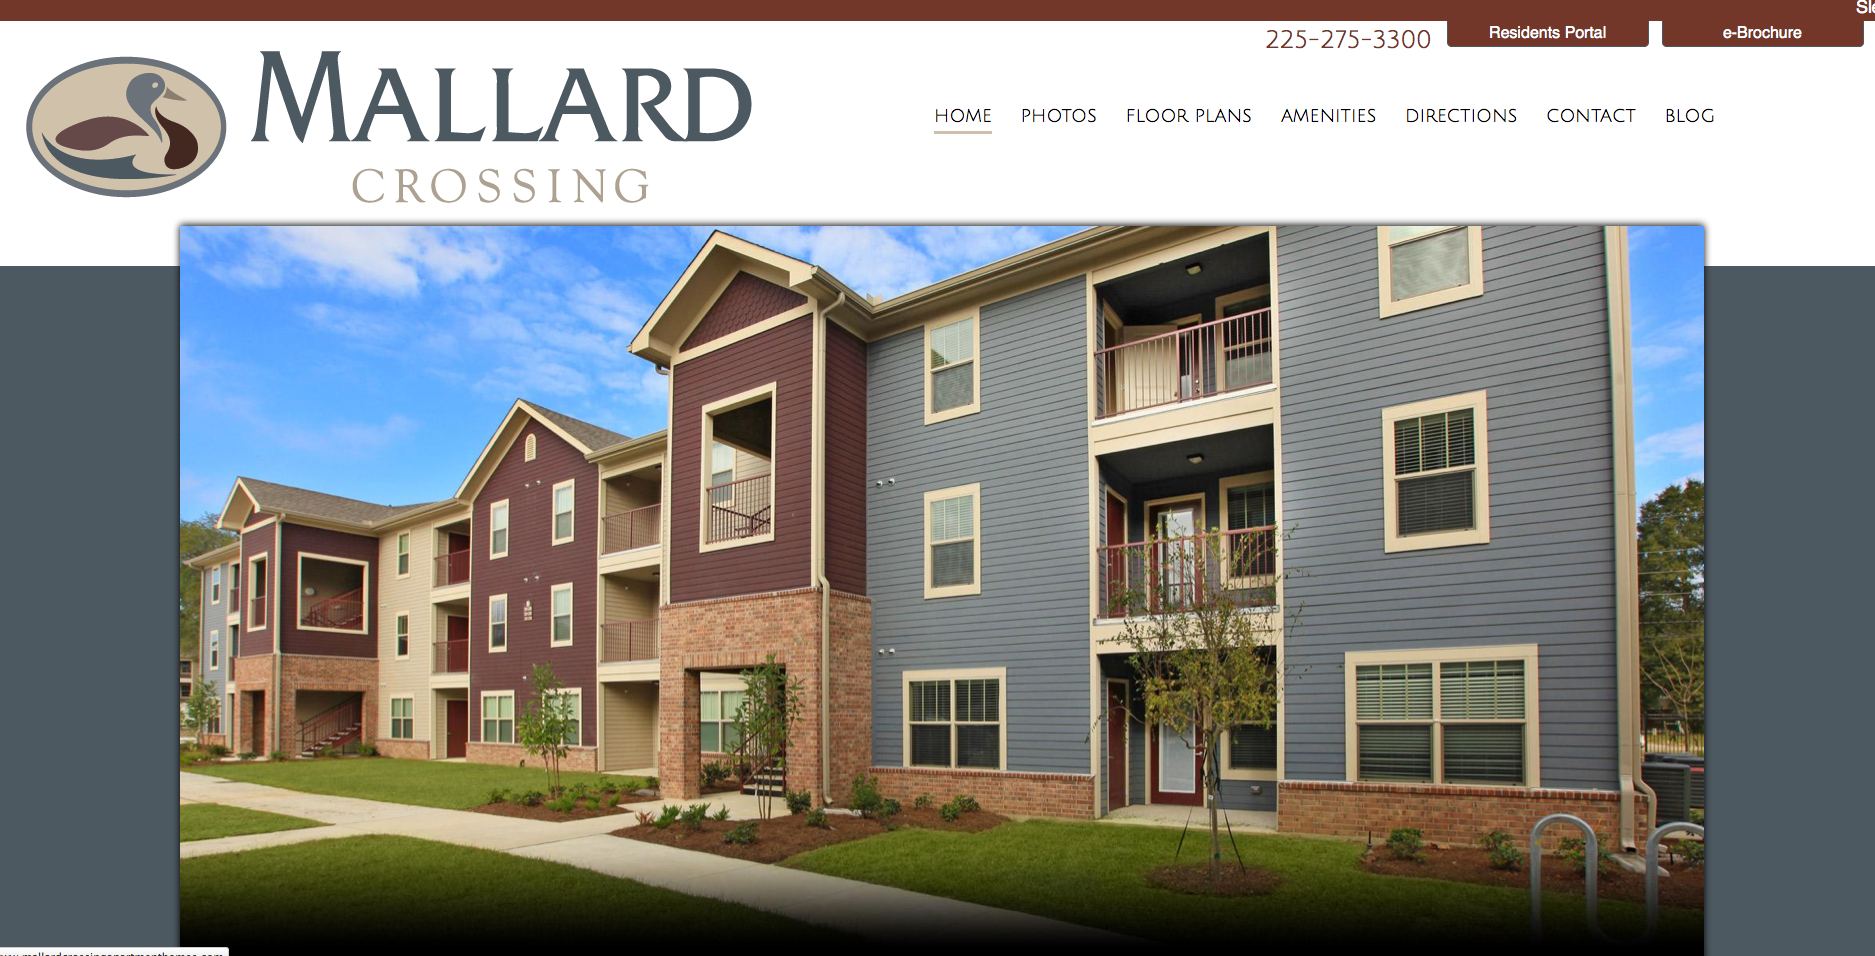 Designed By Jai Mallard Crossing Apartments In Baton Rouge Louisiana Http Www Mallardcrossingapartmenthomes Com House Styles Home Apartment